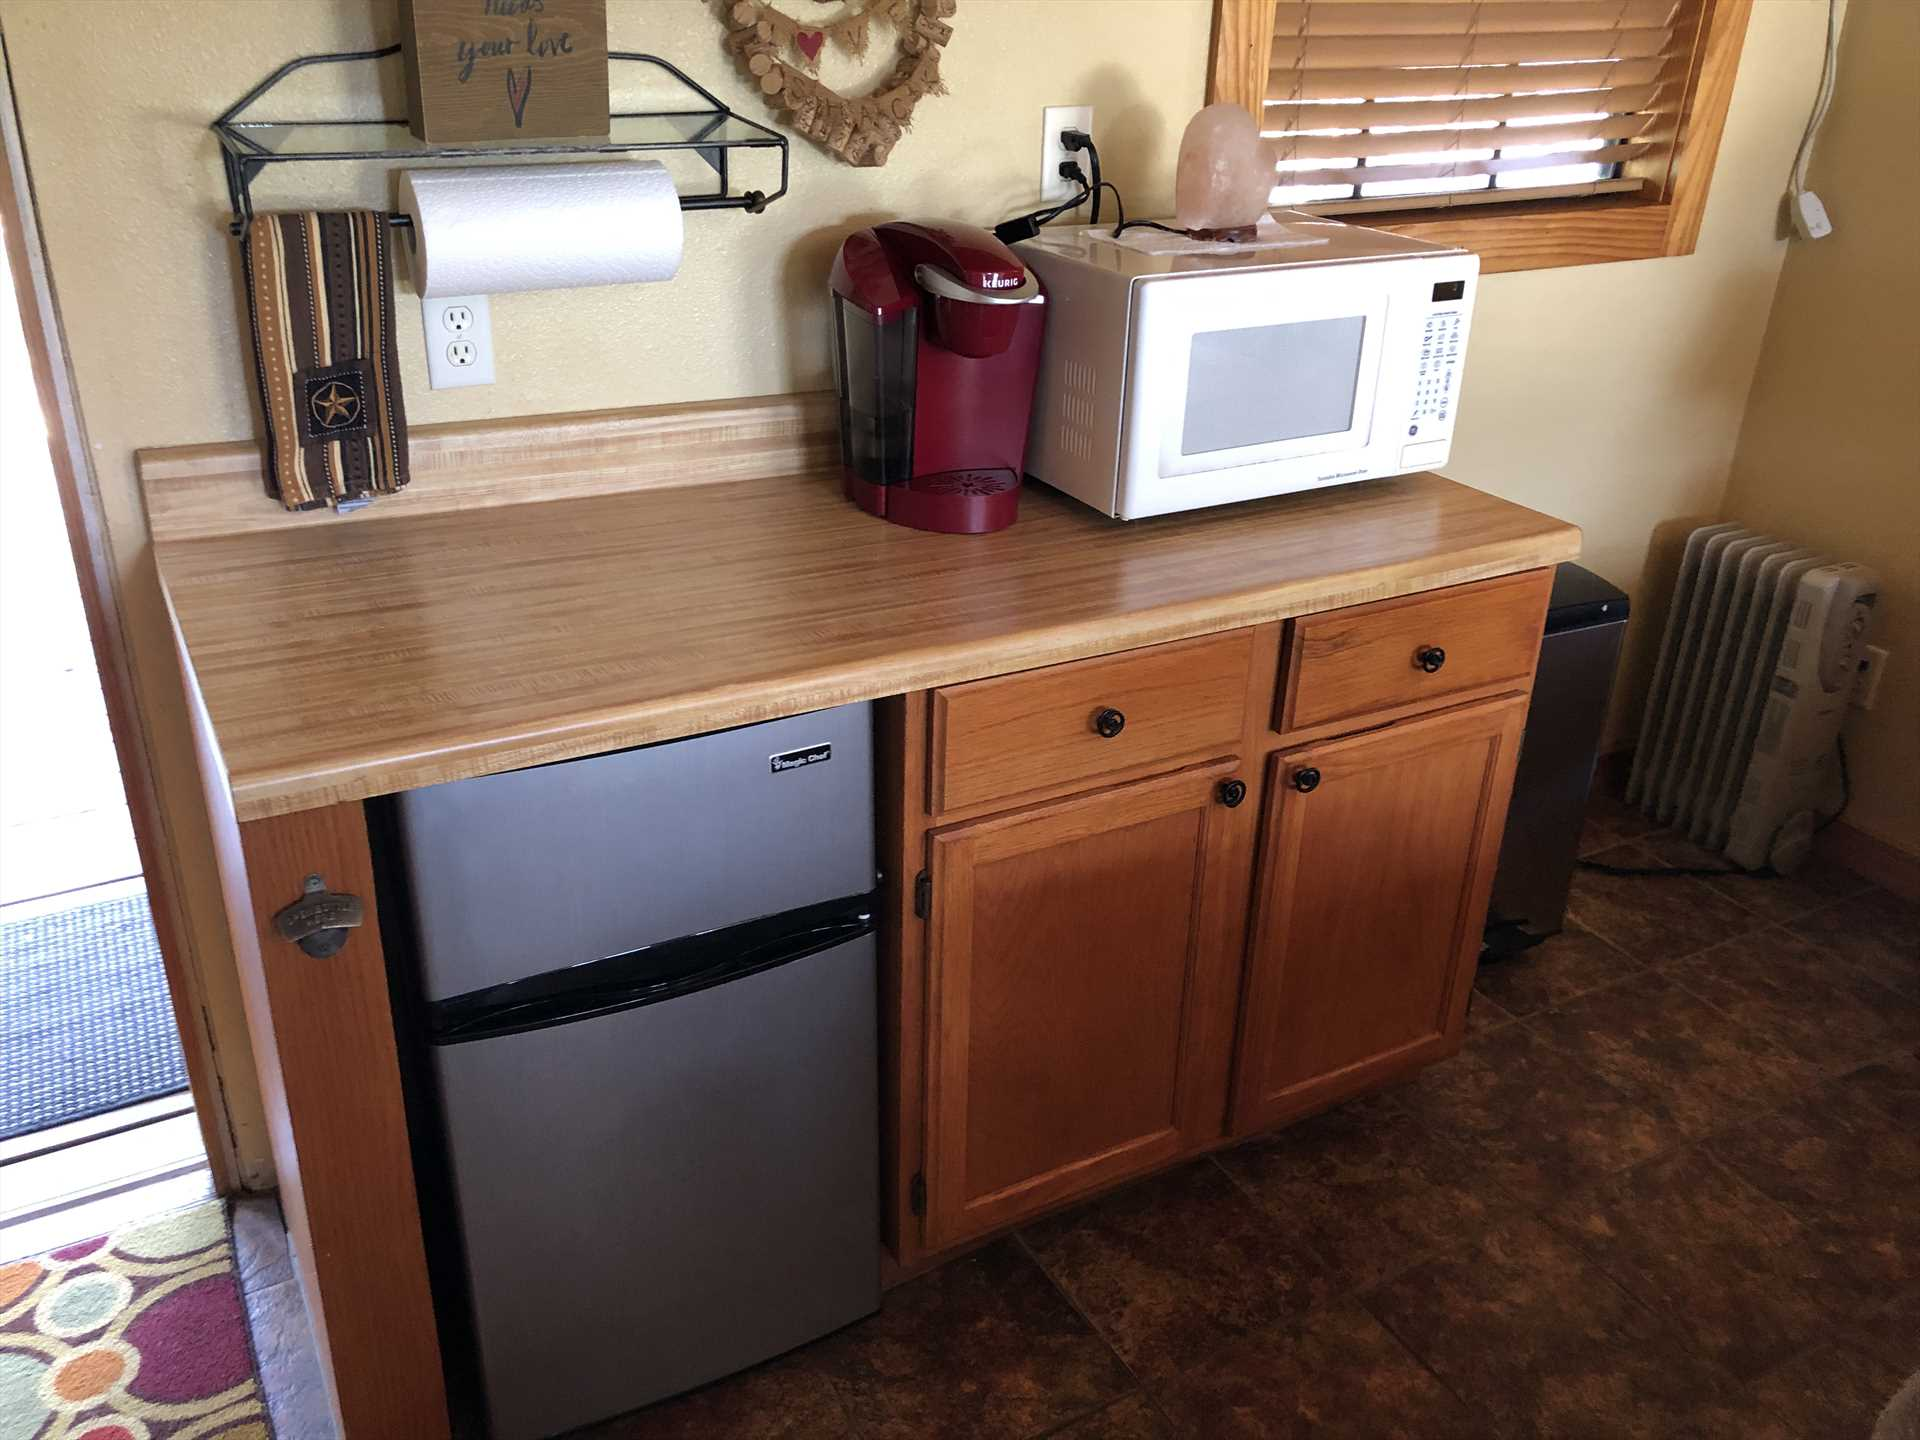 A microwave, coffee maker, and mini fridge can be found in the cozy kitchenette. Keep in mind Bandera, Boerne, and Pipe Creek are all close by!